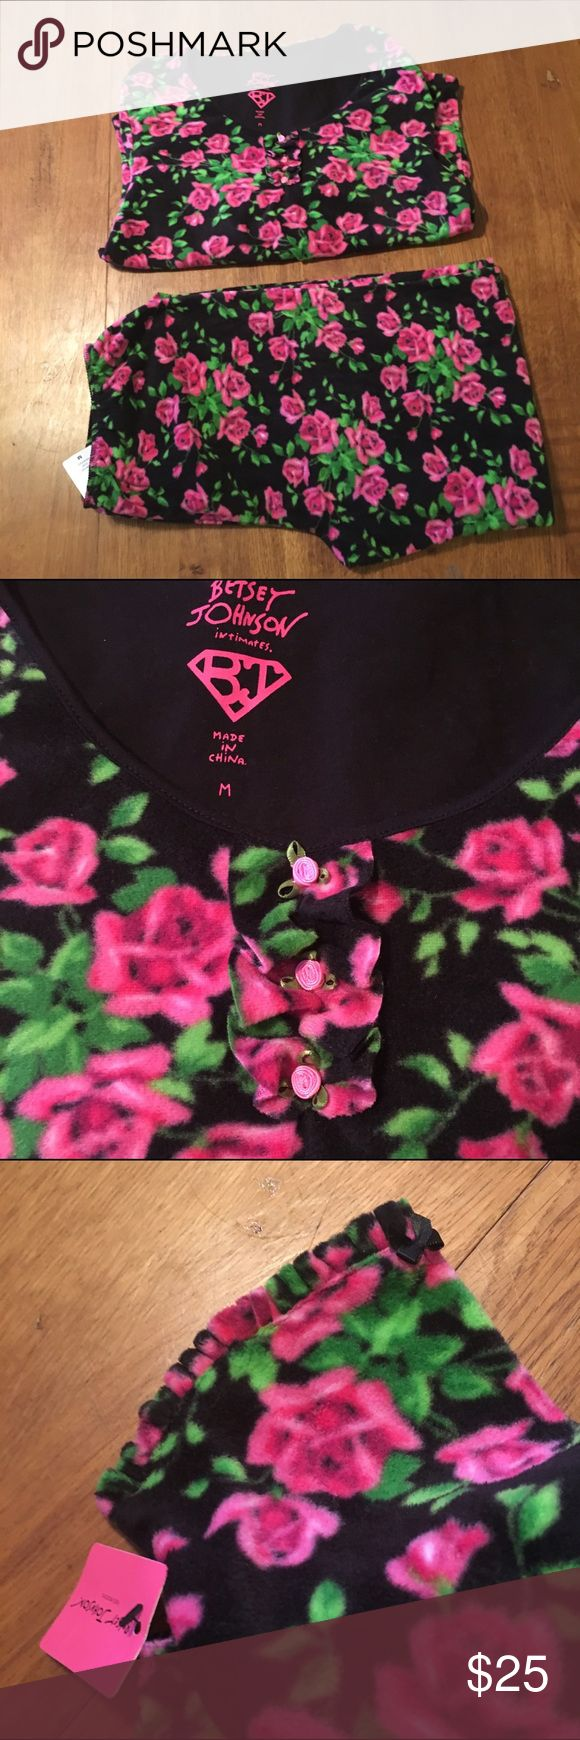 "Betsey Johnson Fleece Pajamas Black fleece with pink, fuschia, and green floral print pj's by Betsey Johnson. So soft and warm! Perfect for lounging on cold winter mornings! Size M. Shirt Bust: 18"" Waist: 18"" Hip: 19"" Length: 25 1/2""  Pants Waist:14"" Hips: 21 1/2"" Inseam: 28"" Betsey Johnson Intimates & Sleepwear Pajamas"